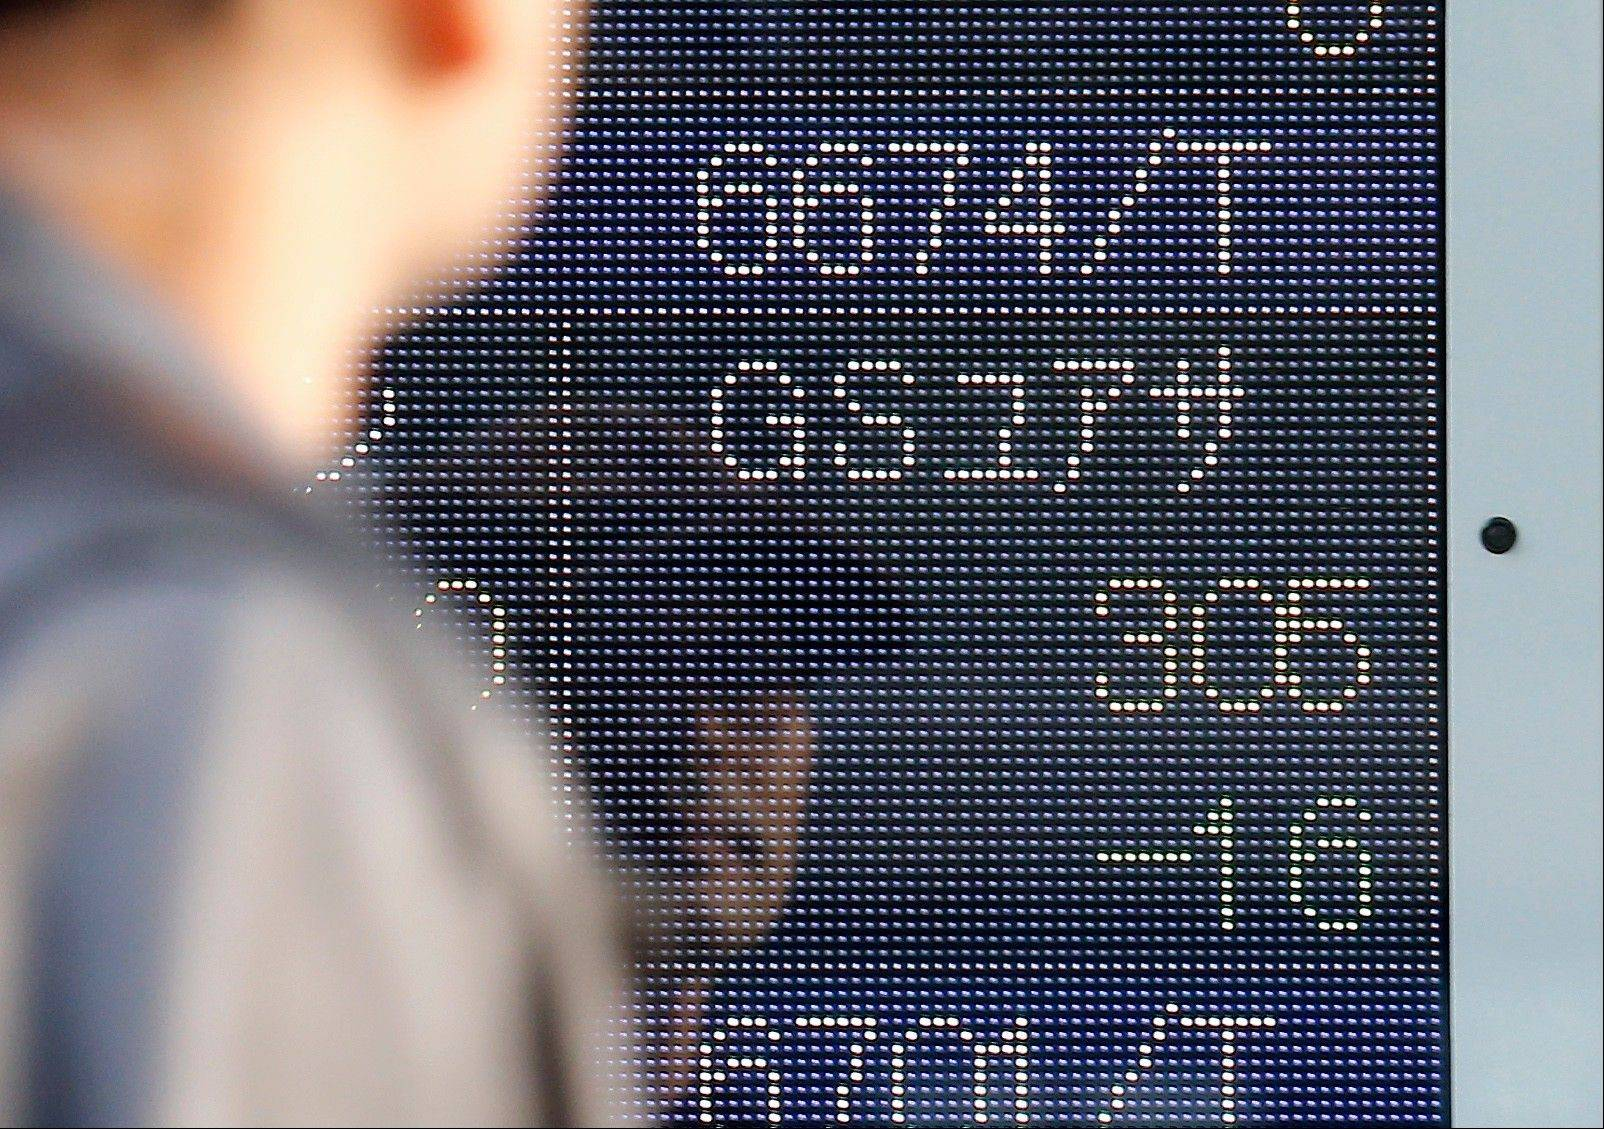 A man looks at the share price of Japanese manufacturer GS Yuasa that closed at 305 yen, 16 yen lower than the previous day trading, on the electronic stock board of a securities firm in Tokyo Thursday, Jan. 17, 2013. GS Yuasa is responsible for the battery of the Boeing's new 787 of which safety and reliability came into question again Wednesday when battery problems led to an emergency landing of an All Nippon Airlines, the biggest customers for the plane, temporarily grounded all 24 787s they own. Boeing shares fell more than 3 percent.